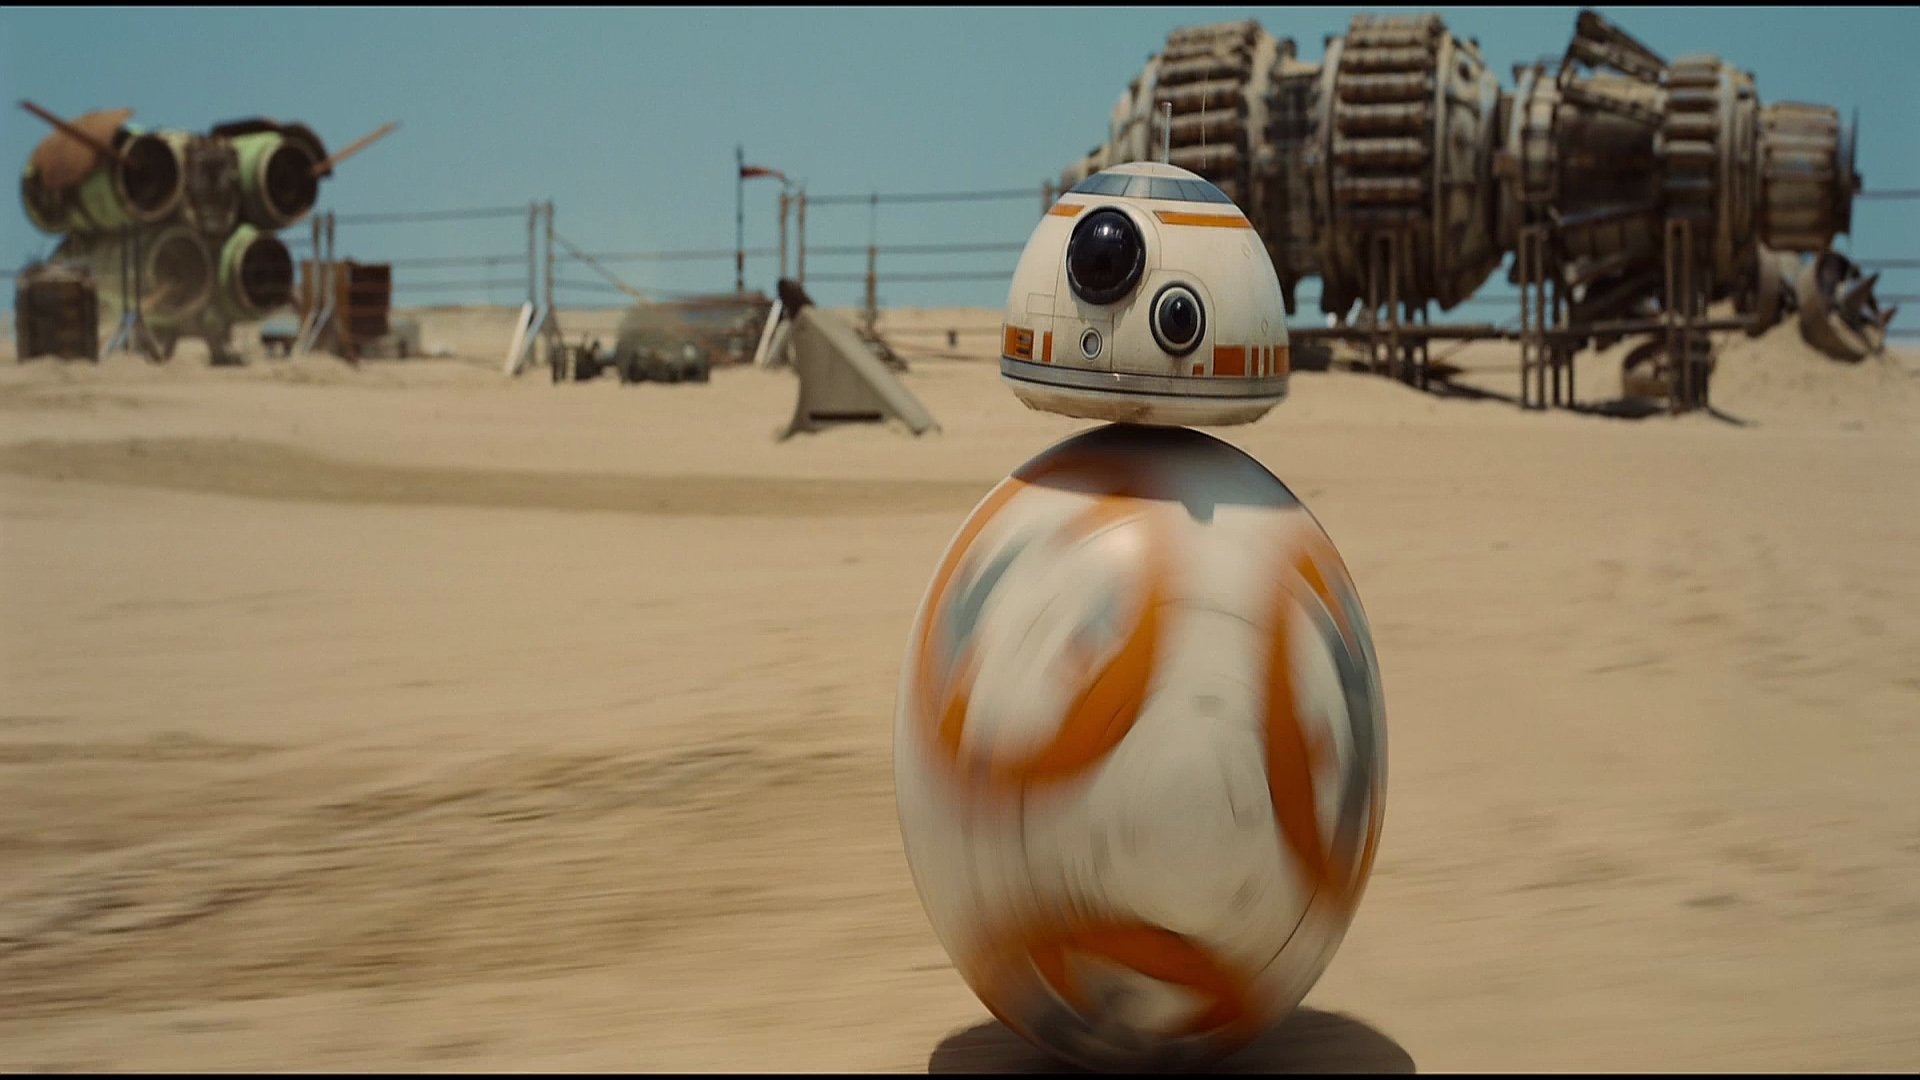 Bb 8 Droid From The Force Awakens Hd Wallpaper Background Image